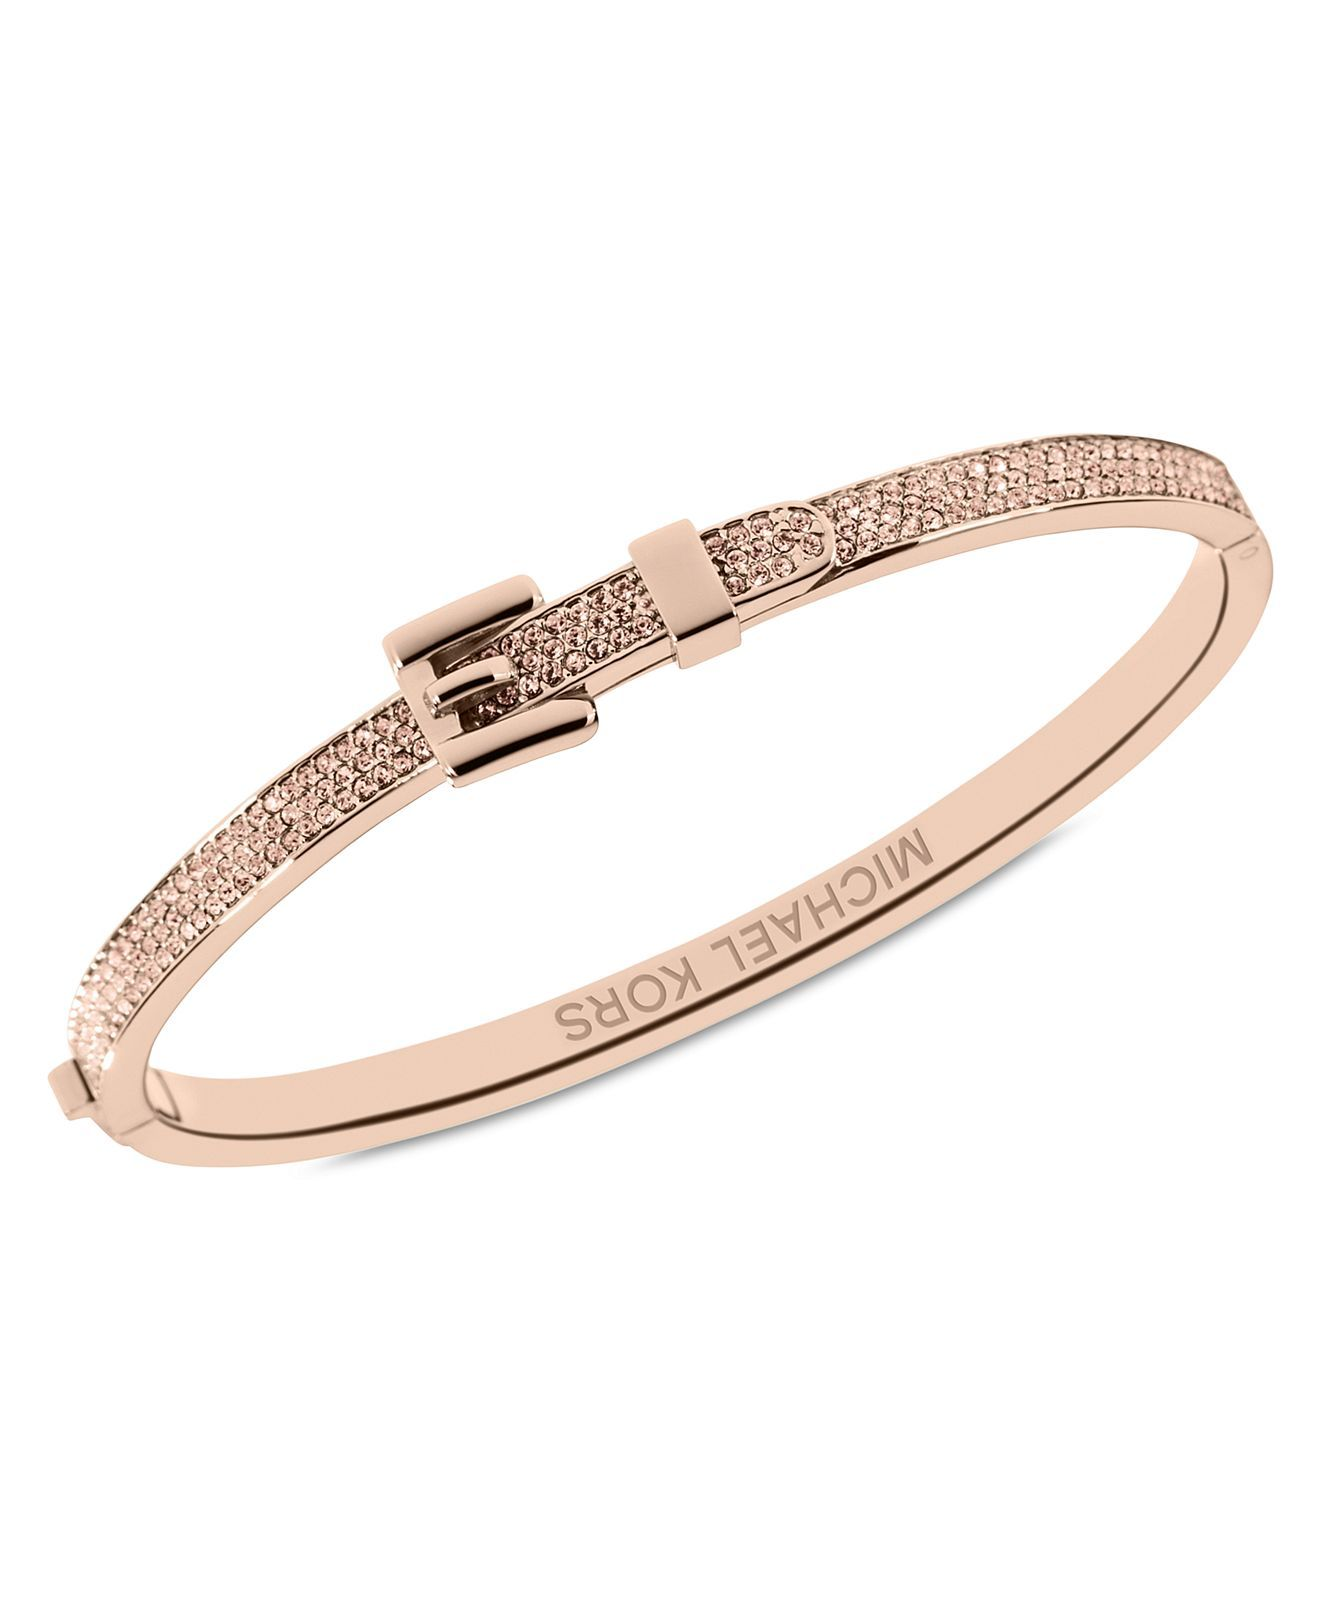 Michael Kors Bracelet Rose Gold Tone Steel Pave Buckle Bangle